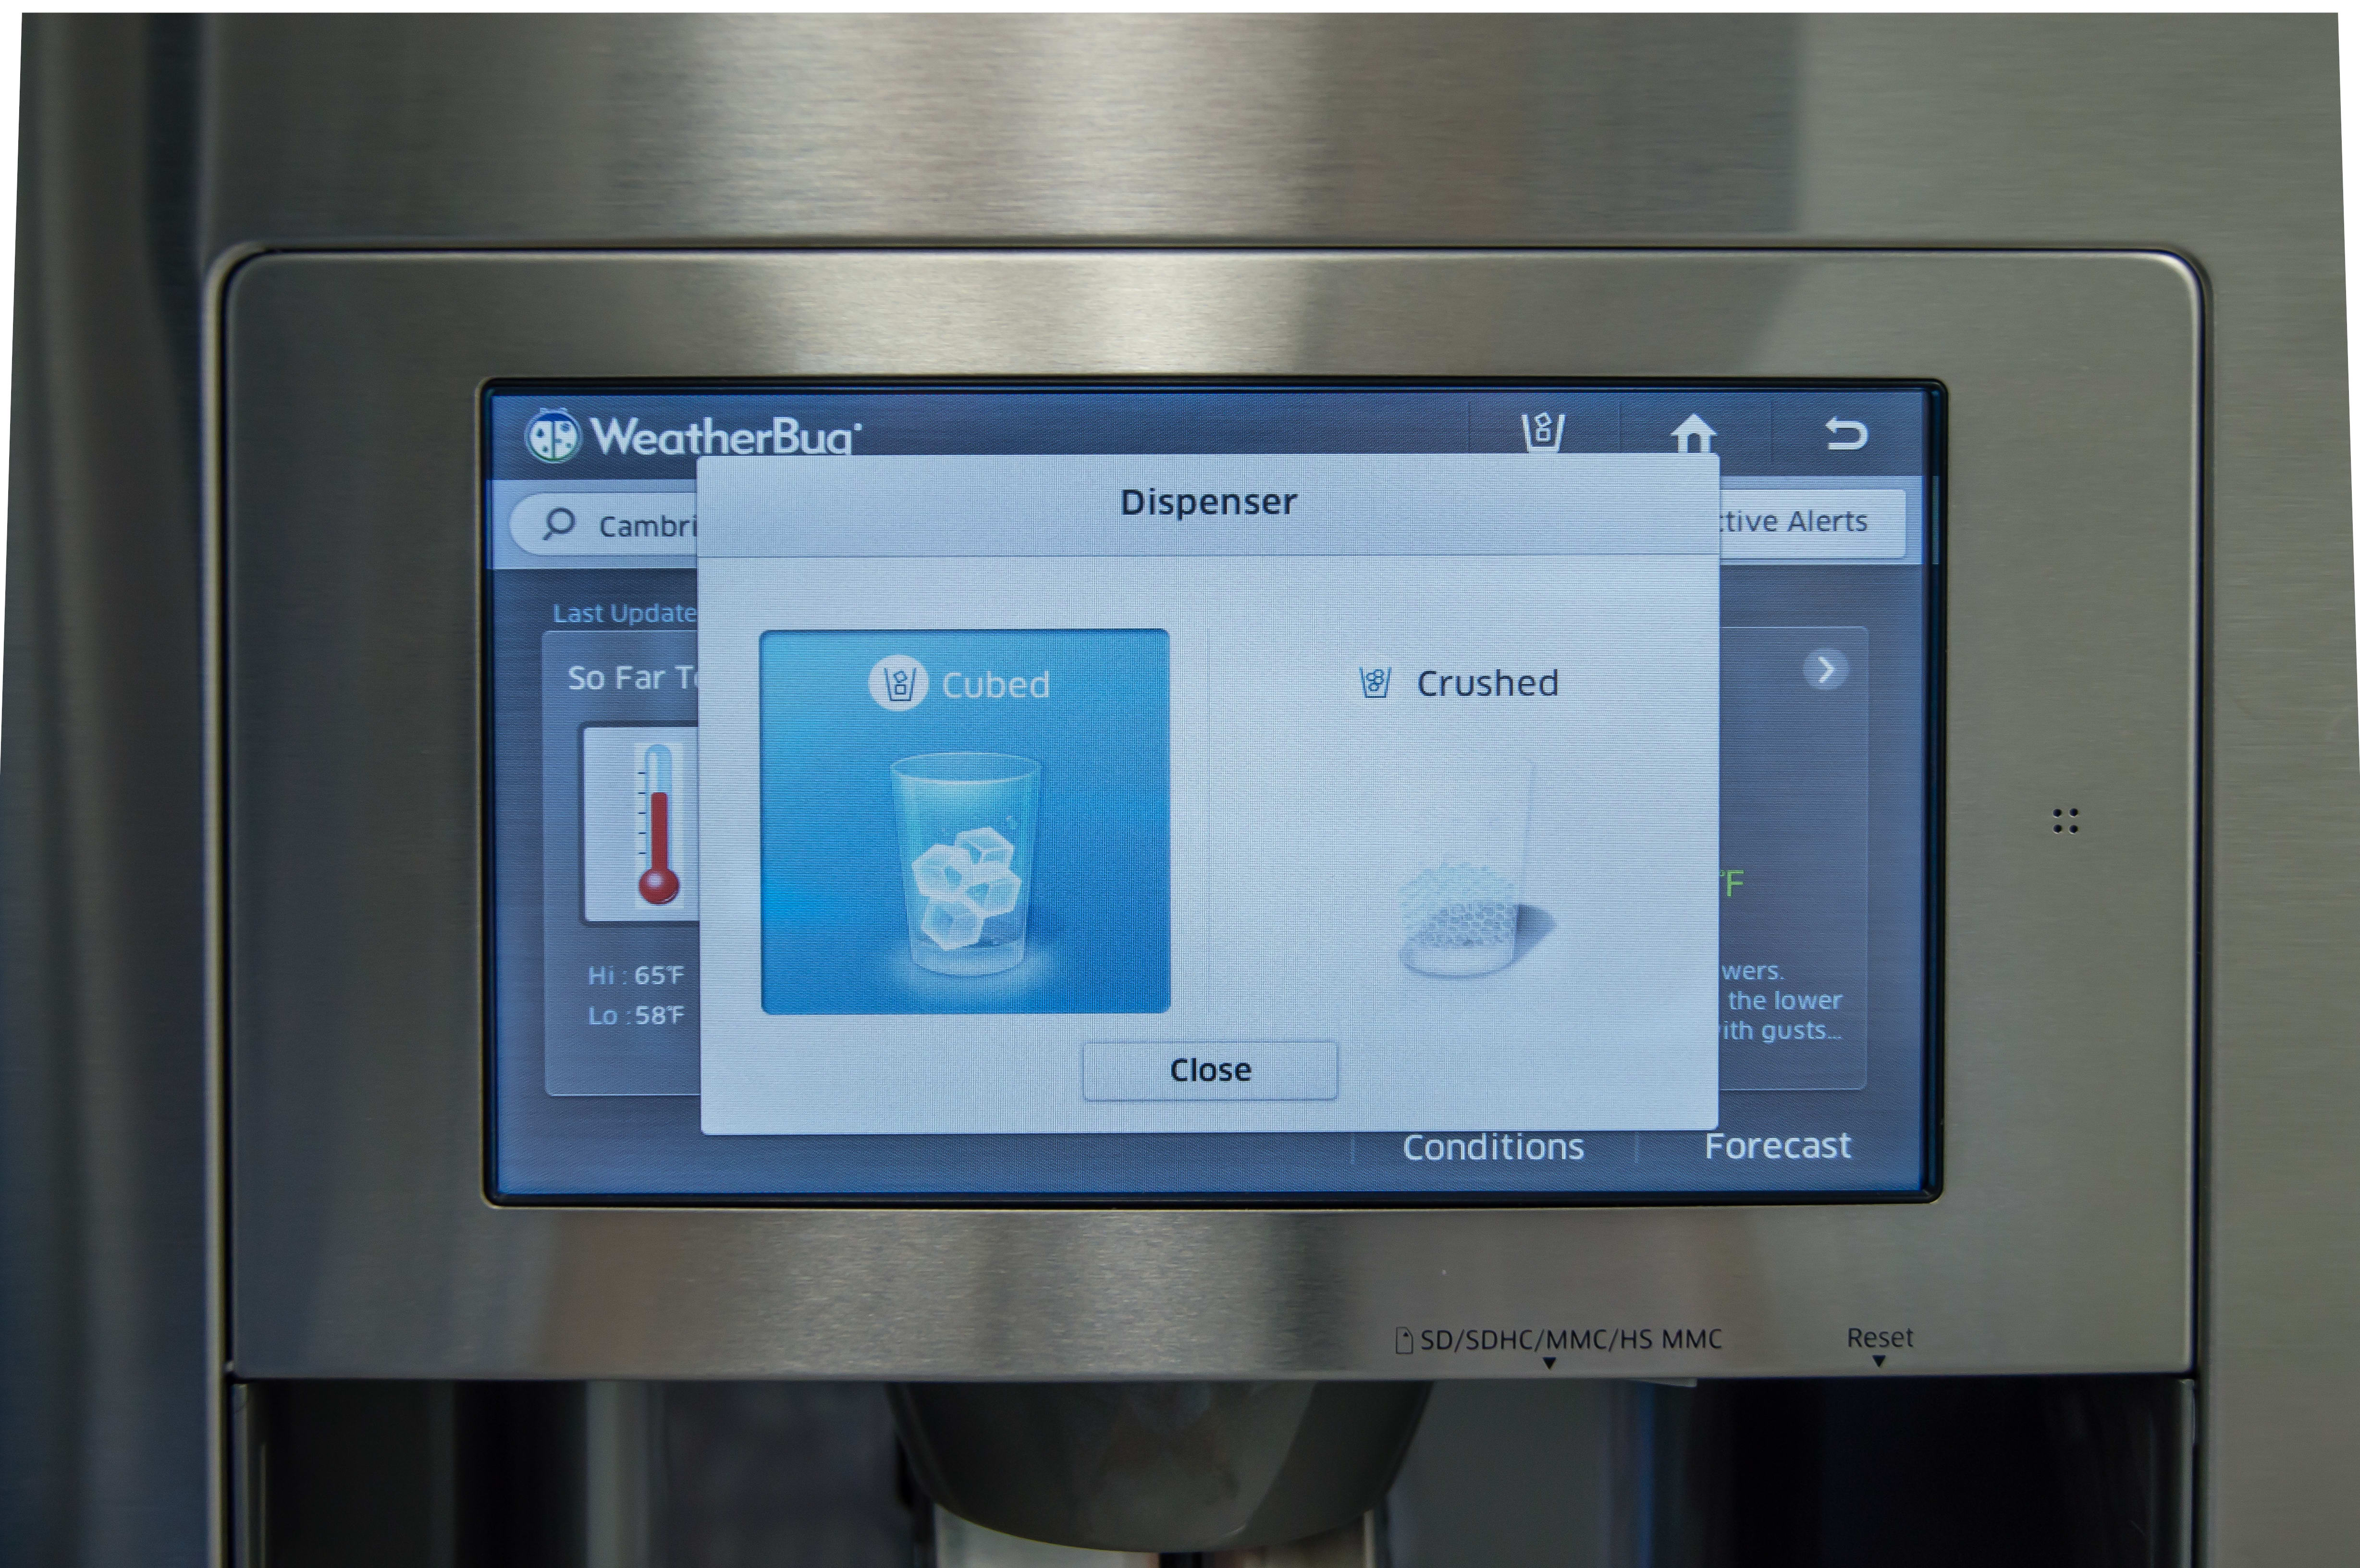 You'll need to use the LCD even for basic functions, like controlling the icemaker.